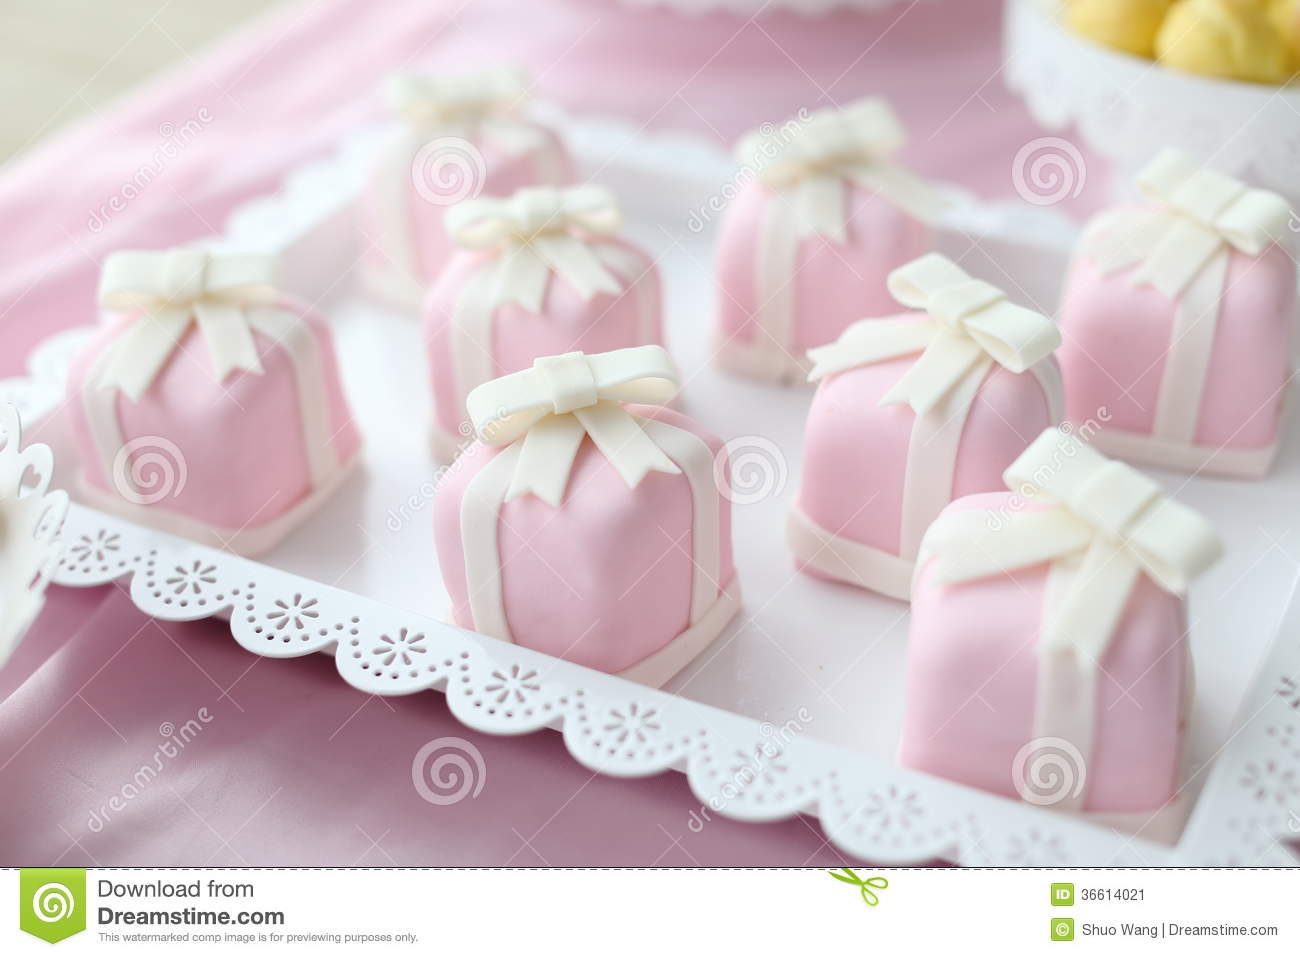 Wedding cake stock image. Image of cupcakes, dessert - 36614021